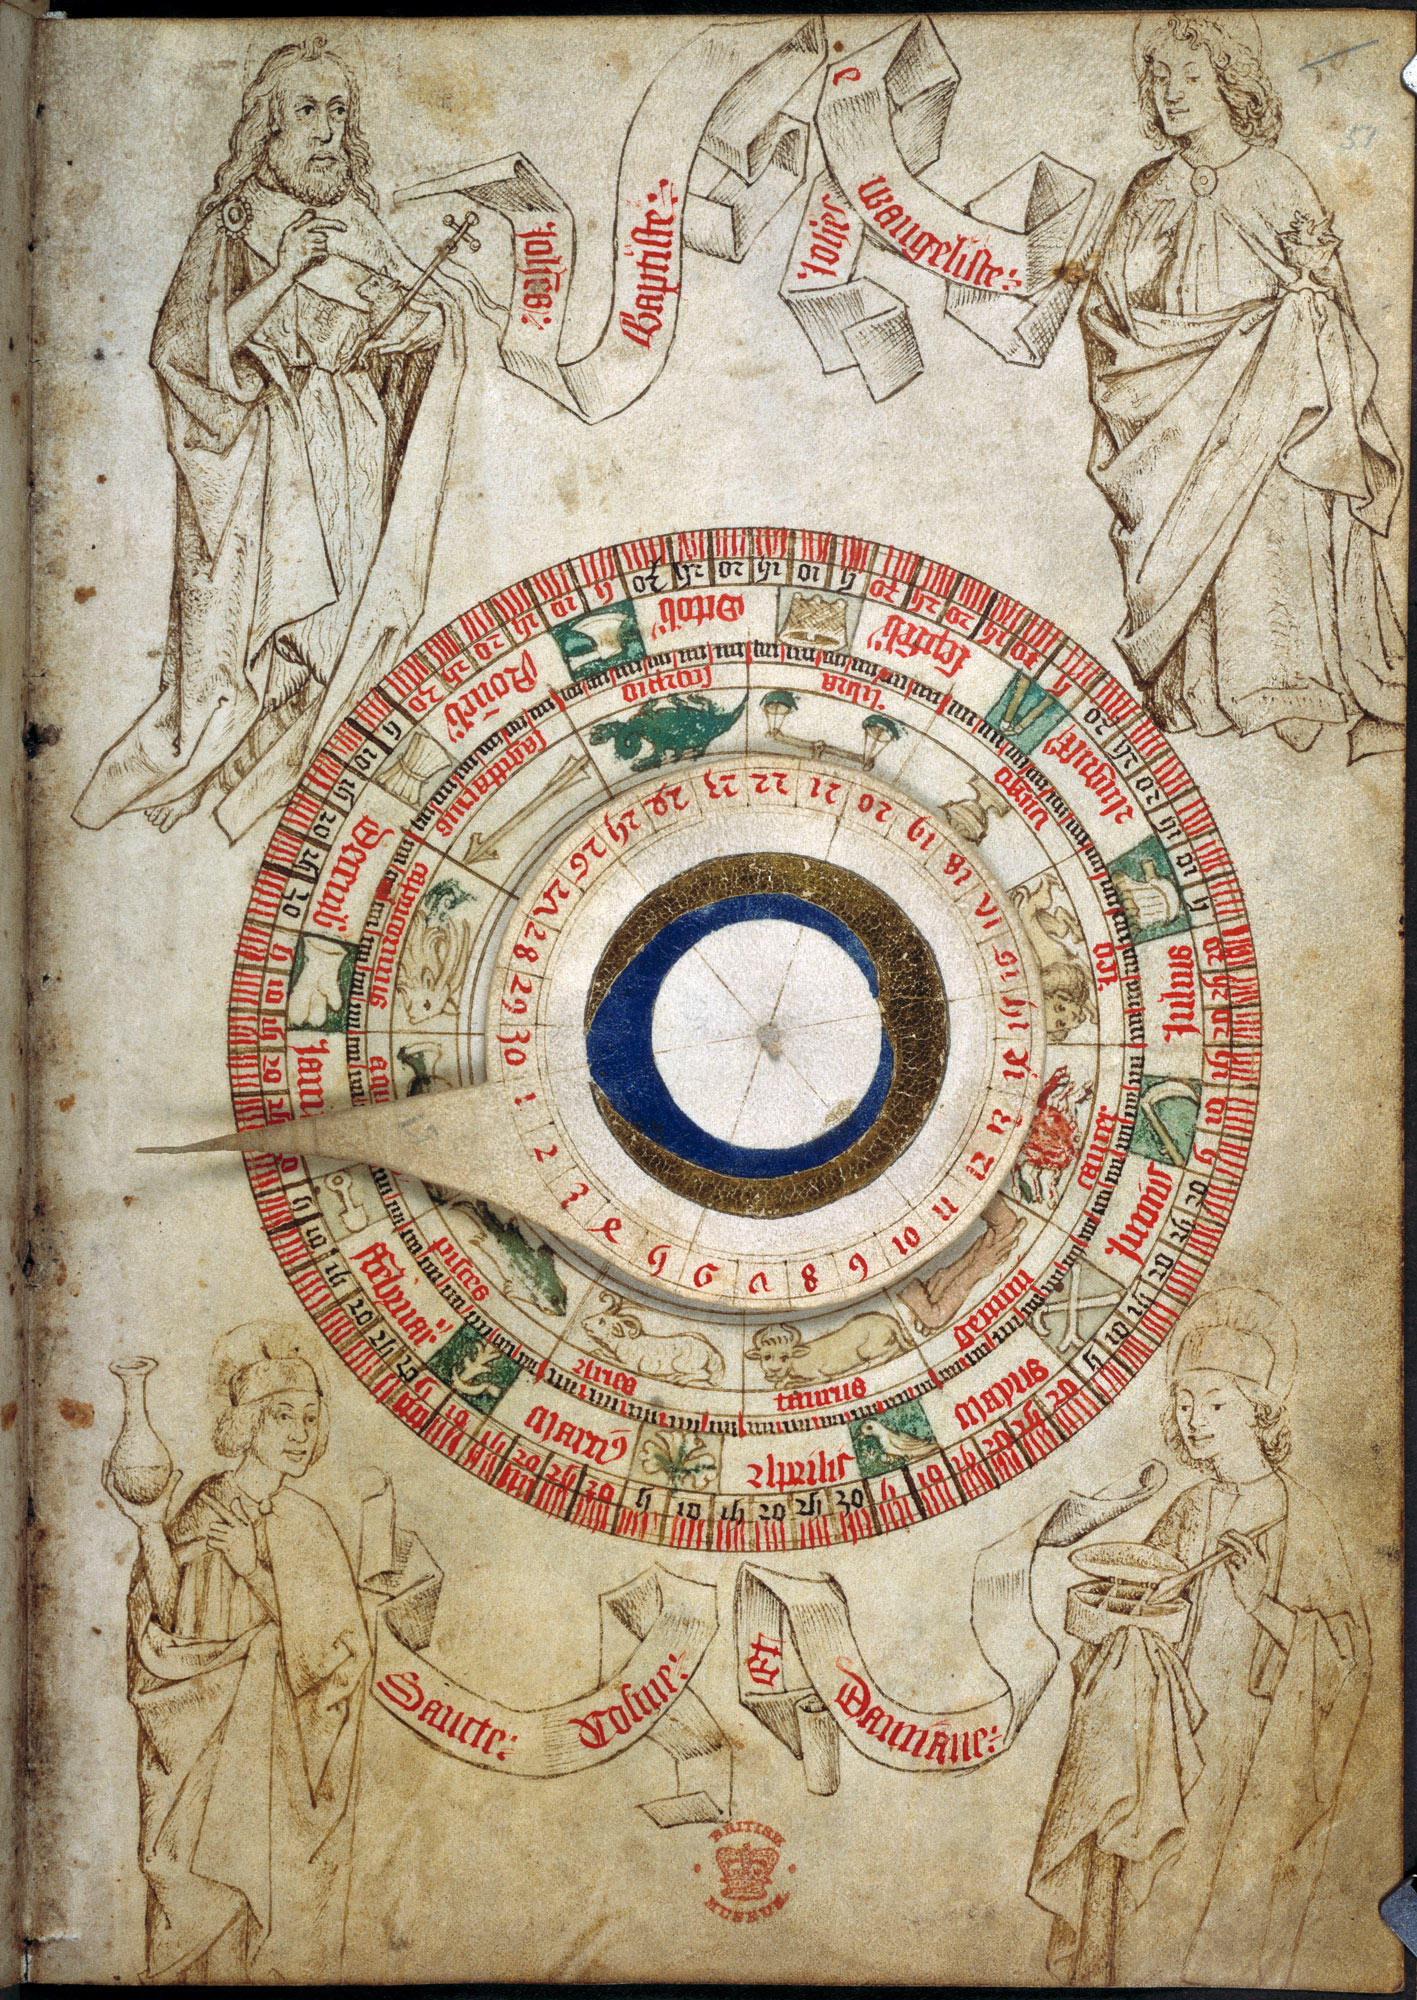 Medicine in the Middle Ages - The British Library